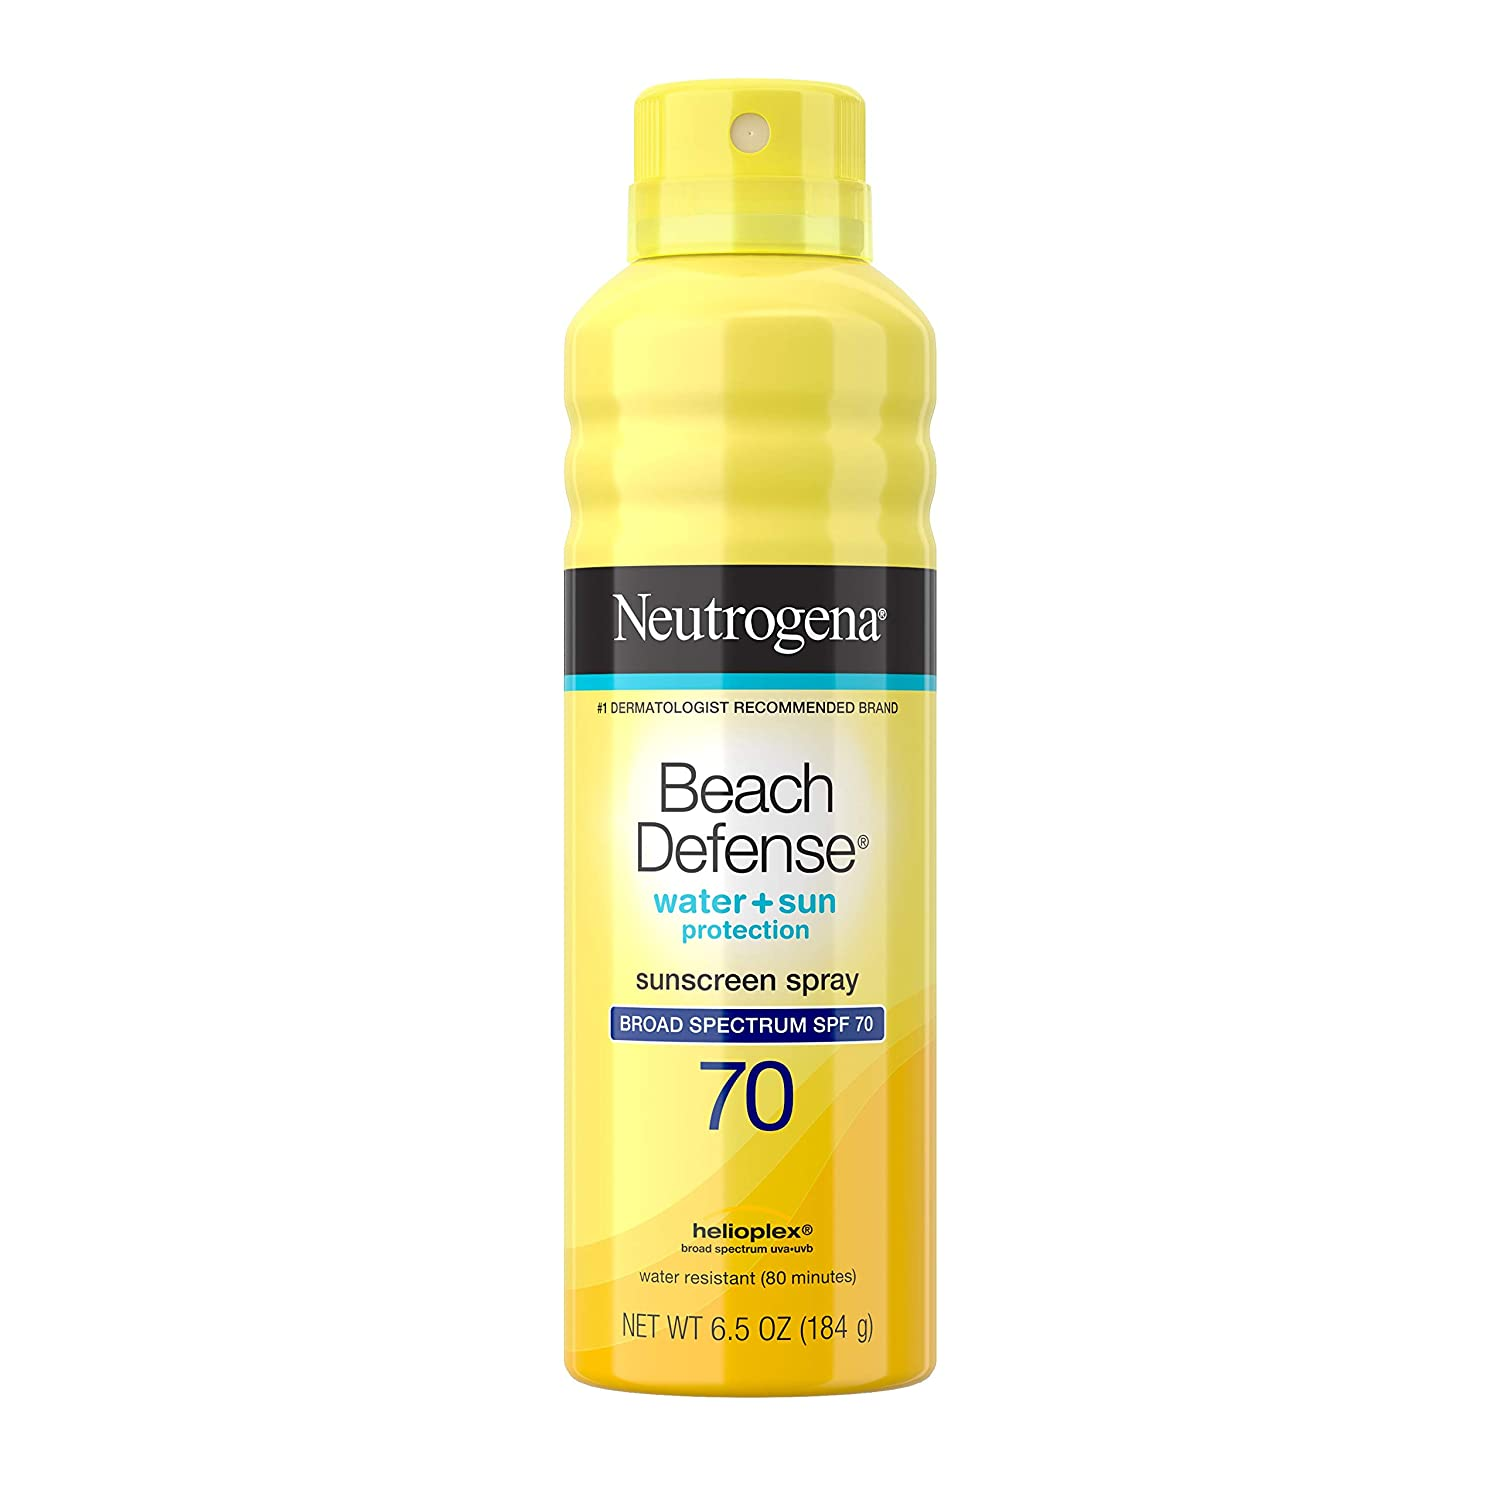 Neutrogena Beach Defense Body Spray Sunscreen with Broad Spectrum SPF 70, Water-Resistant and Oil-Free Sun Protection, 6.5 oz ( Pack of 4)